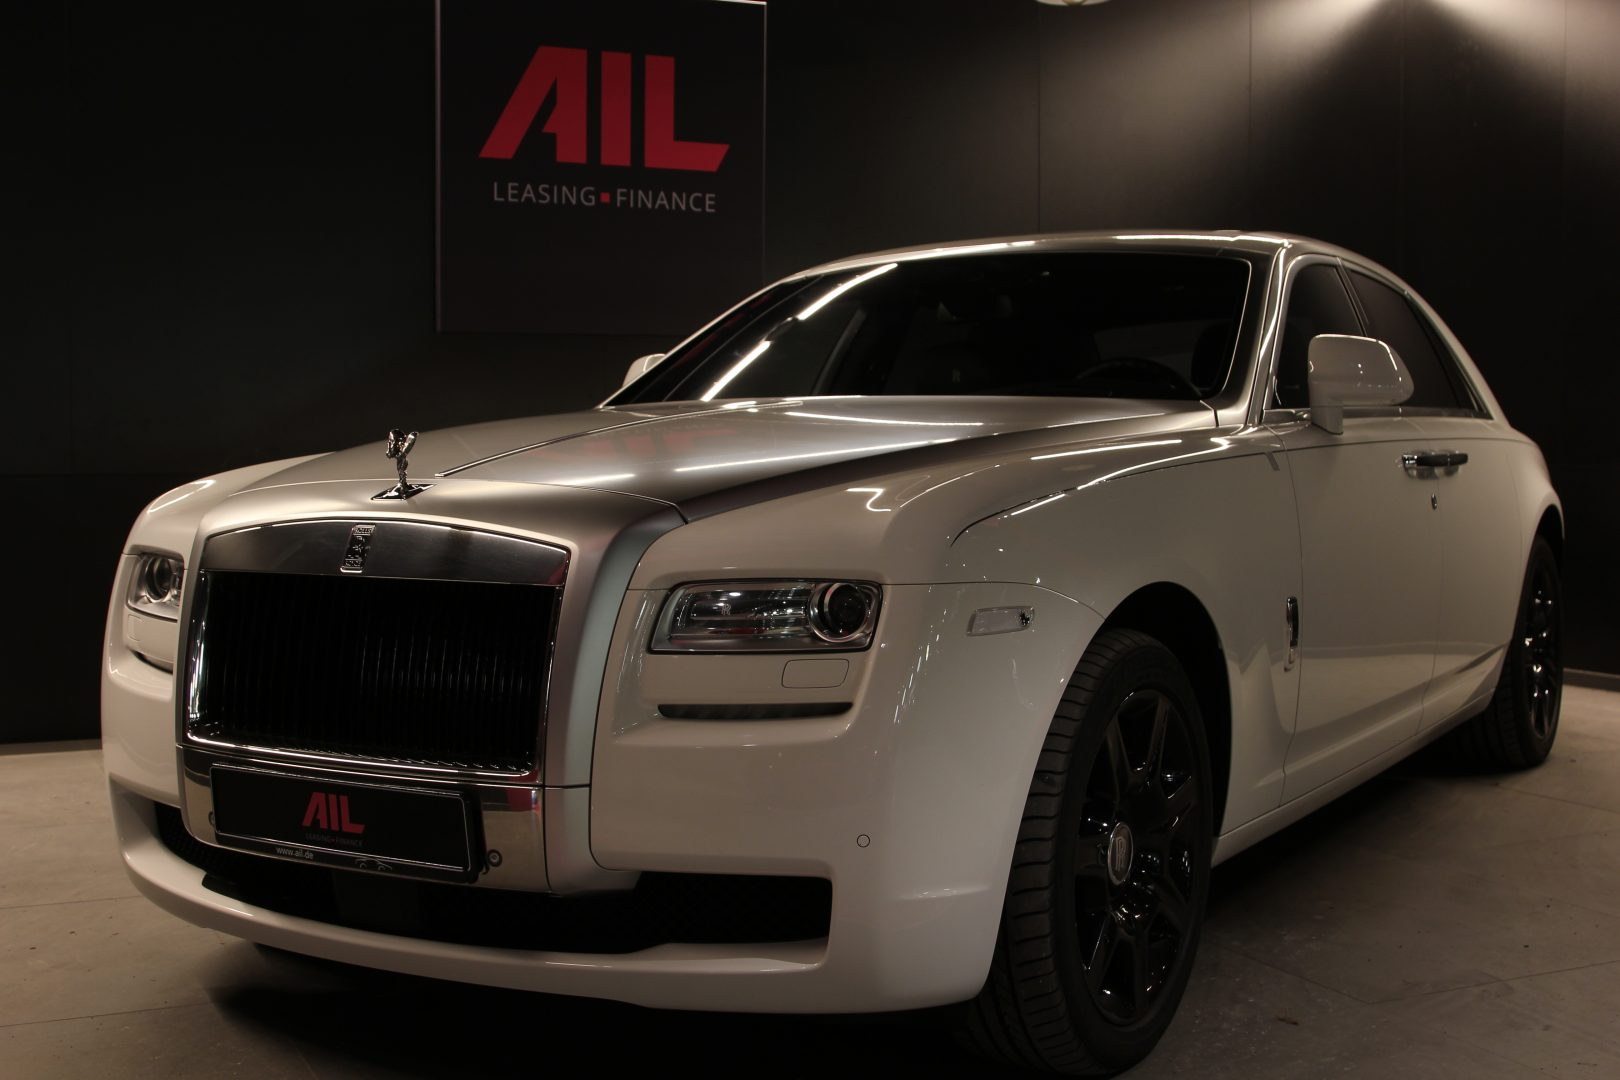 AIL Rolls Royce Ghost Alpine Trial 4